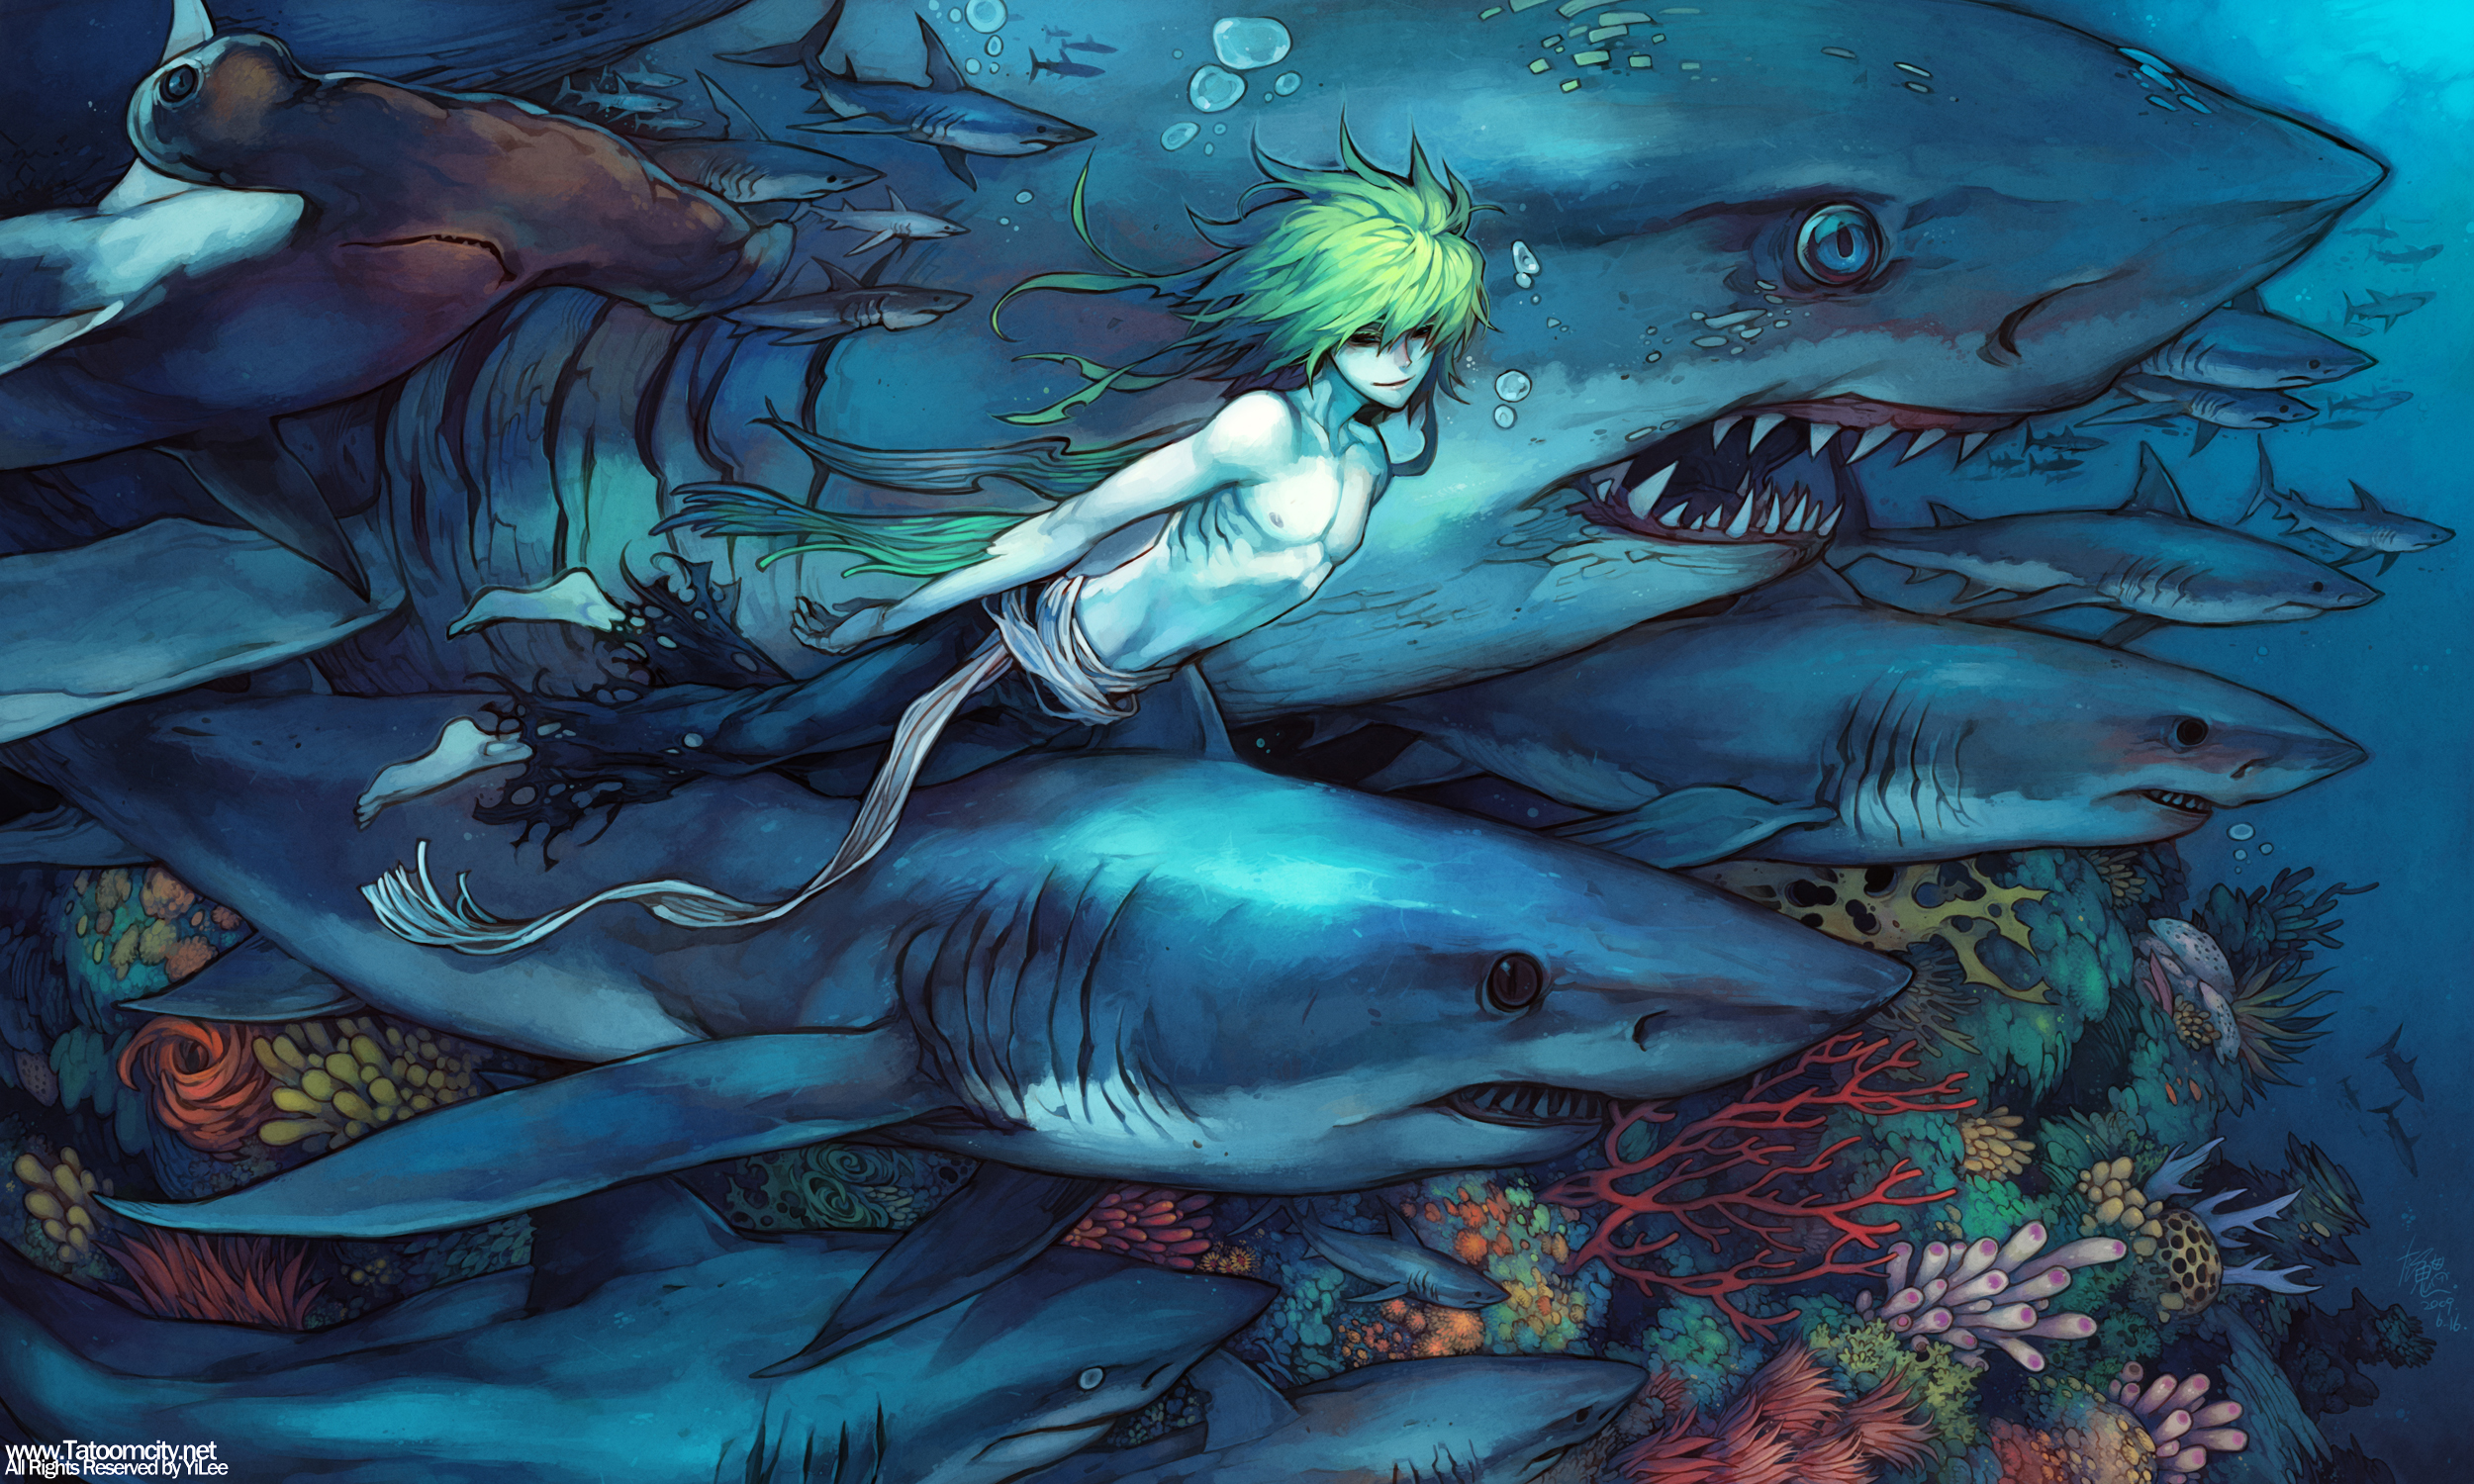 Animal blue bubbles fish green hair male original shark topless